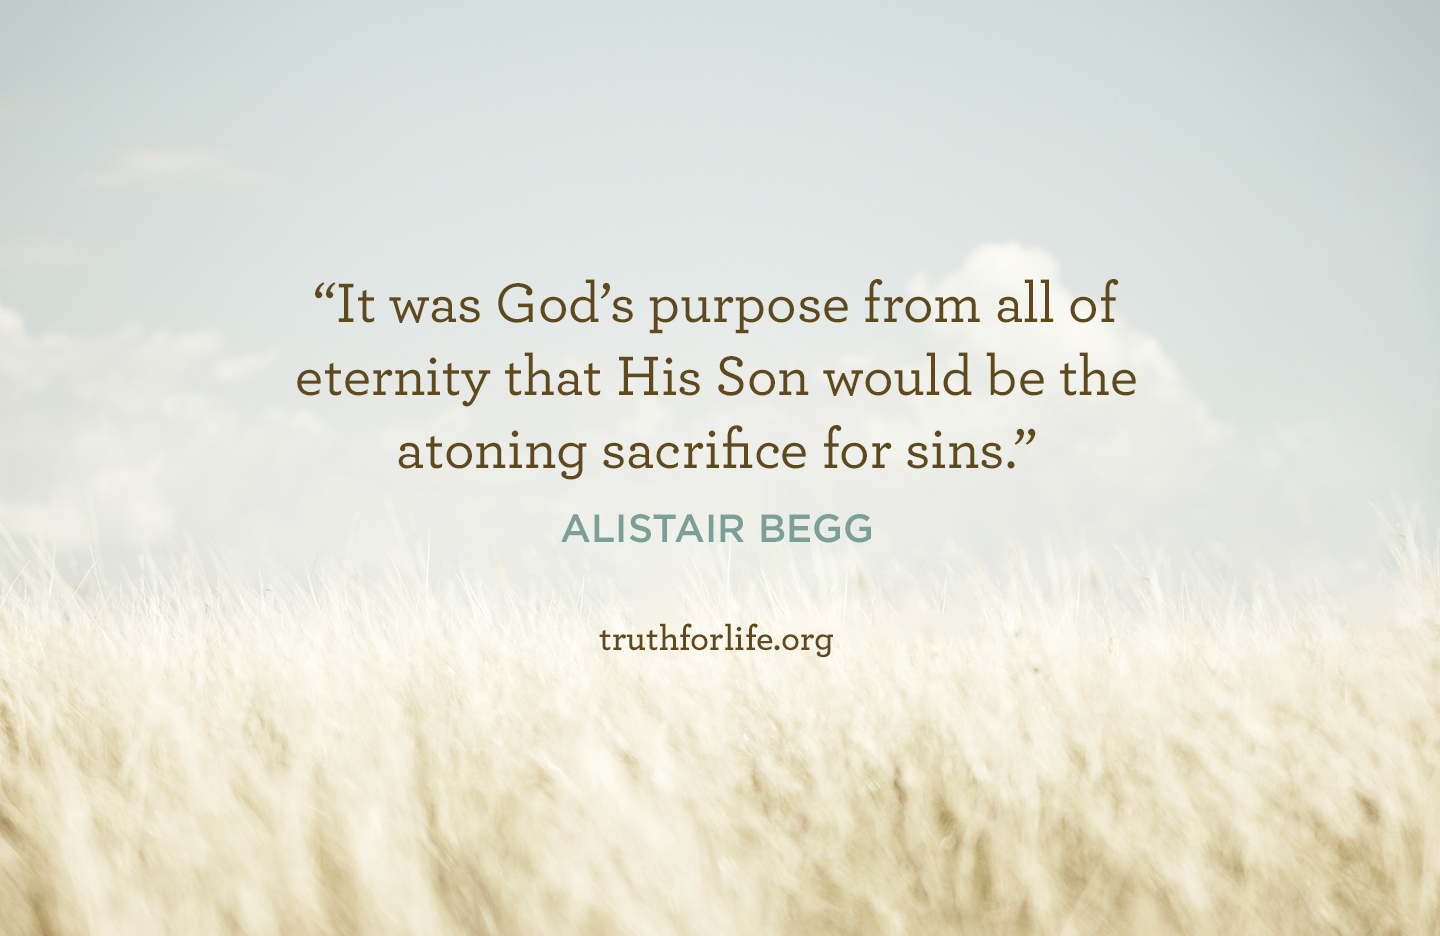 It was God's purpose from all of eternity that His Son would be the atoning sacrifice for sins. - Alistair Begg